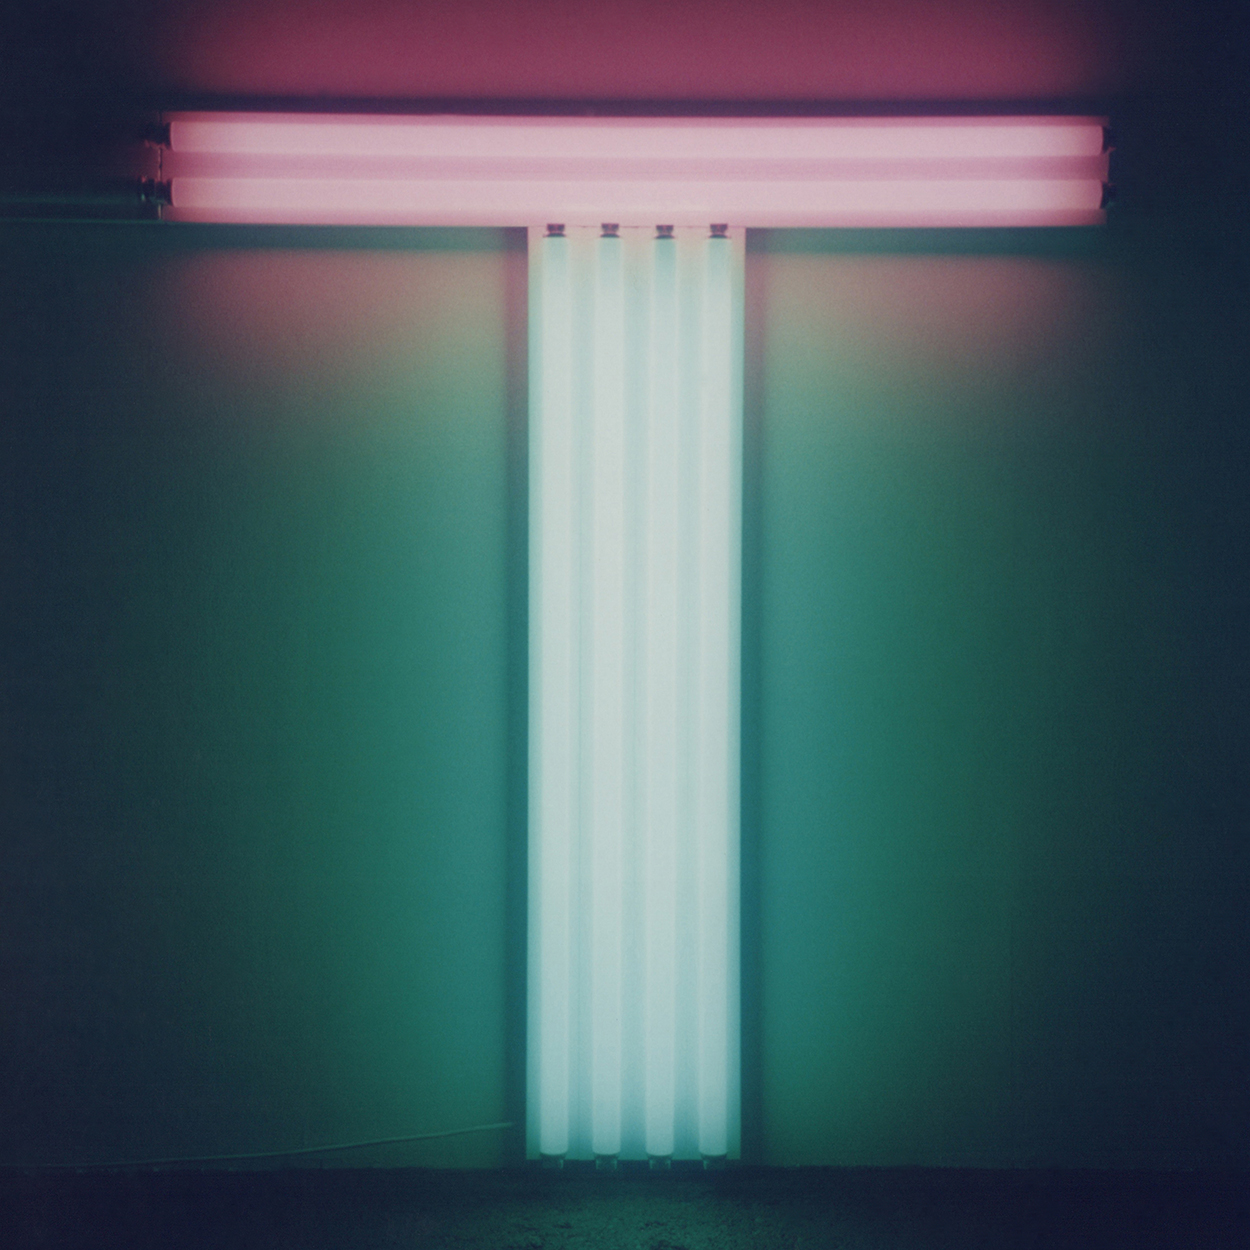 Untitled (To Don Judd, colorist)|green and pink fluorescent lights|137 x 122 x 10 cm|1987